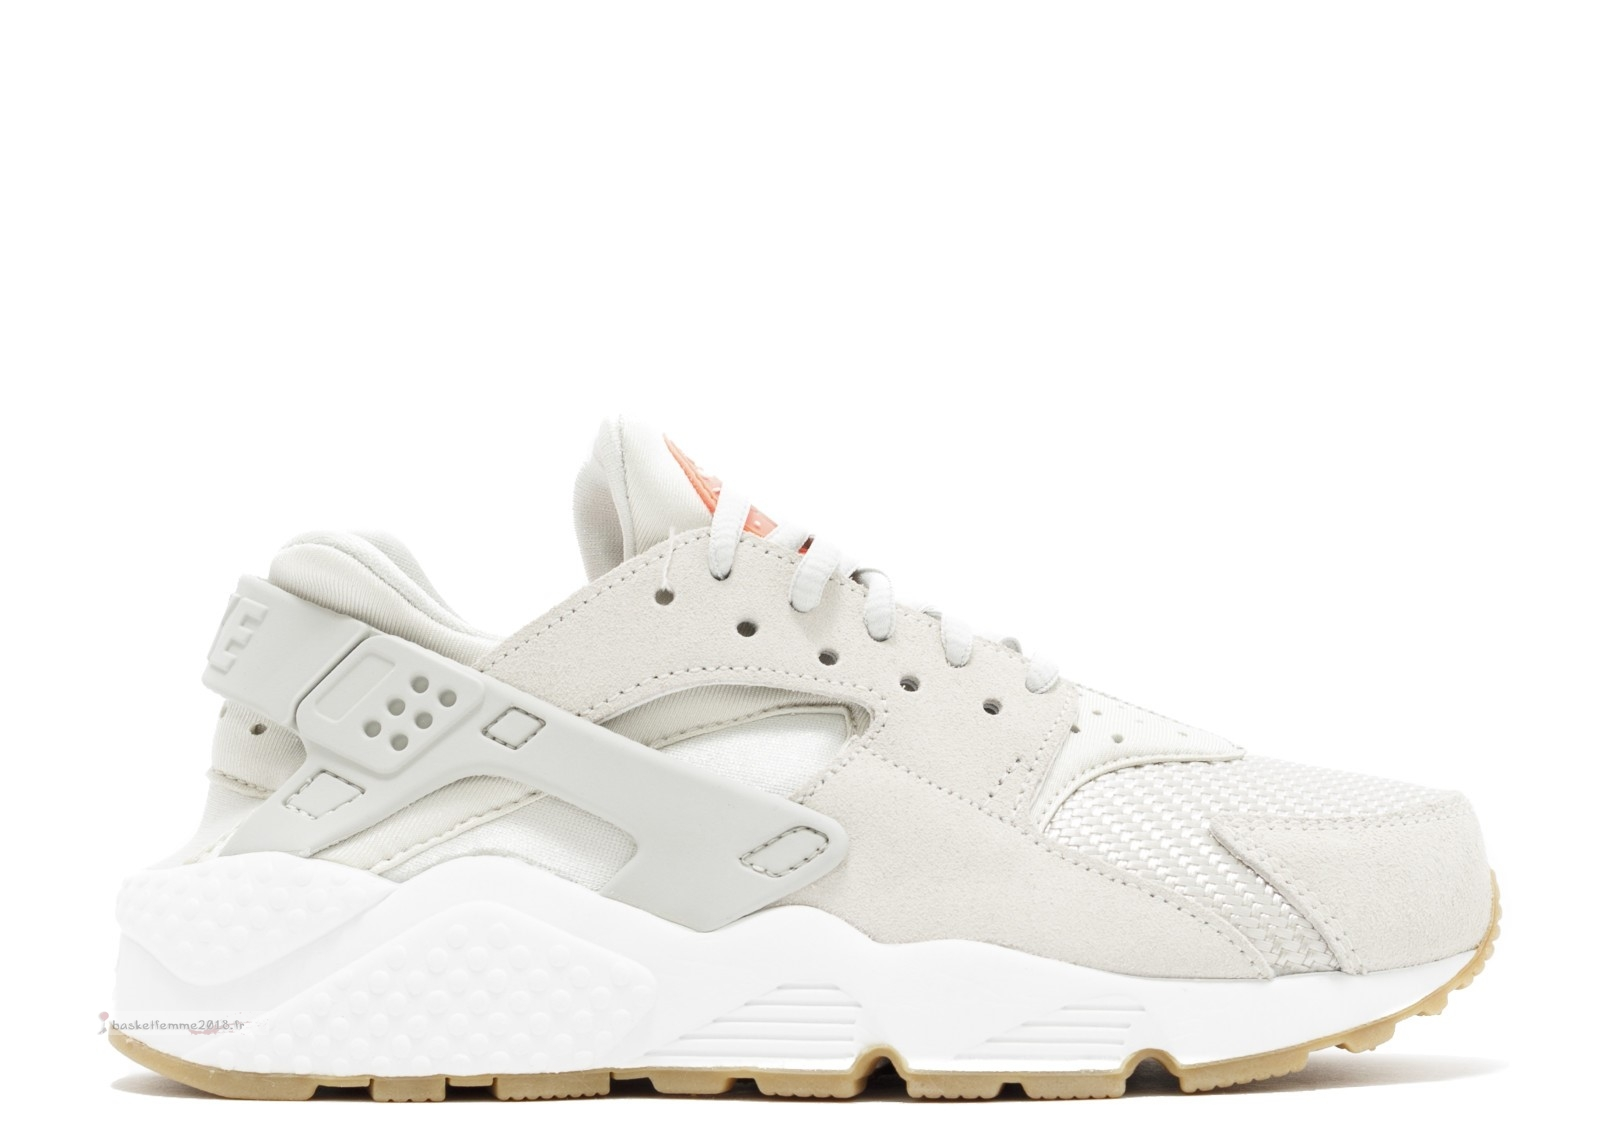 Nike Air Huarache Run Femme Txt Beige (818597-001) Chaussure de Basket